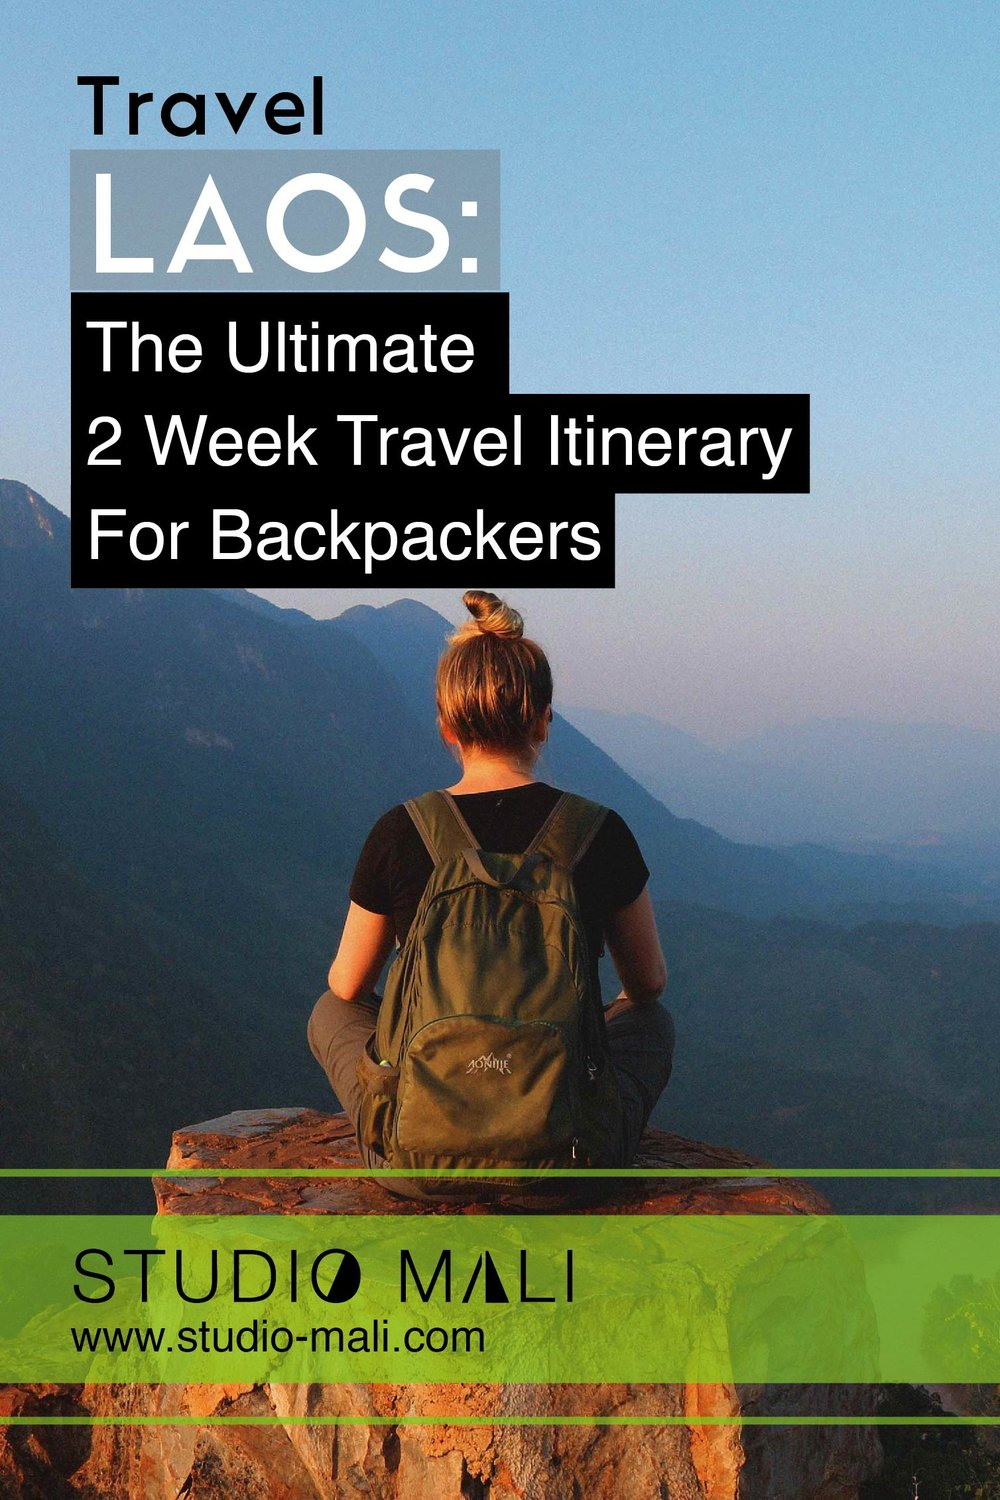 Copy of Laos: The Ultimate 2 Week Travel Itinerary For Backpackers, By Studio Mali